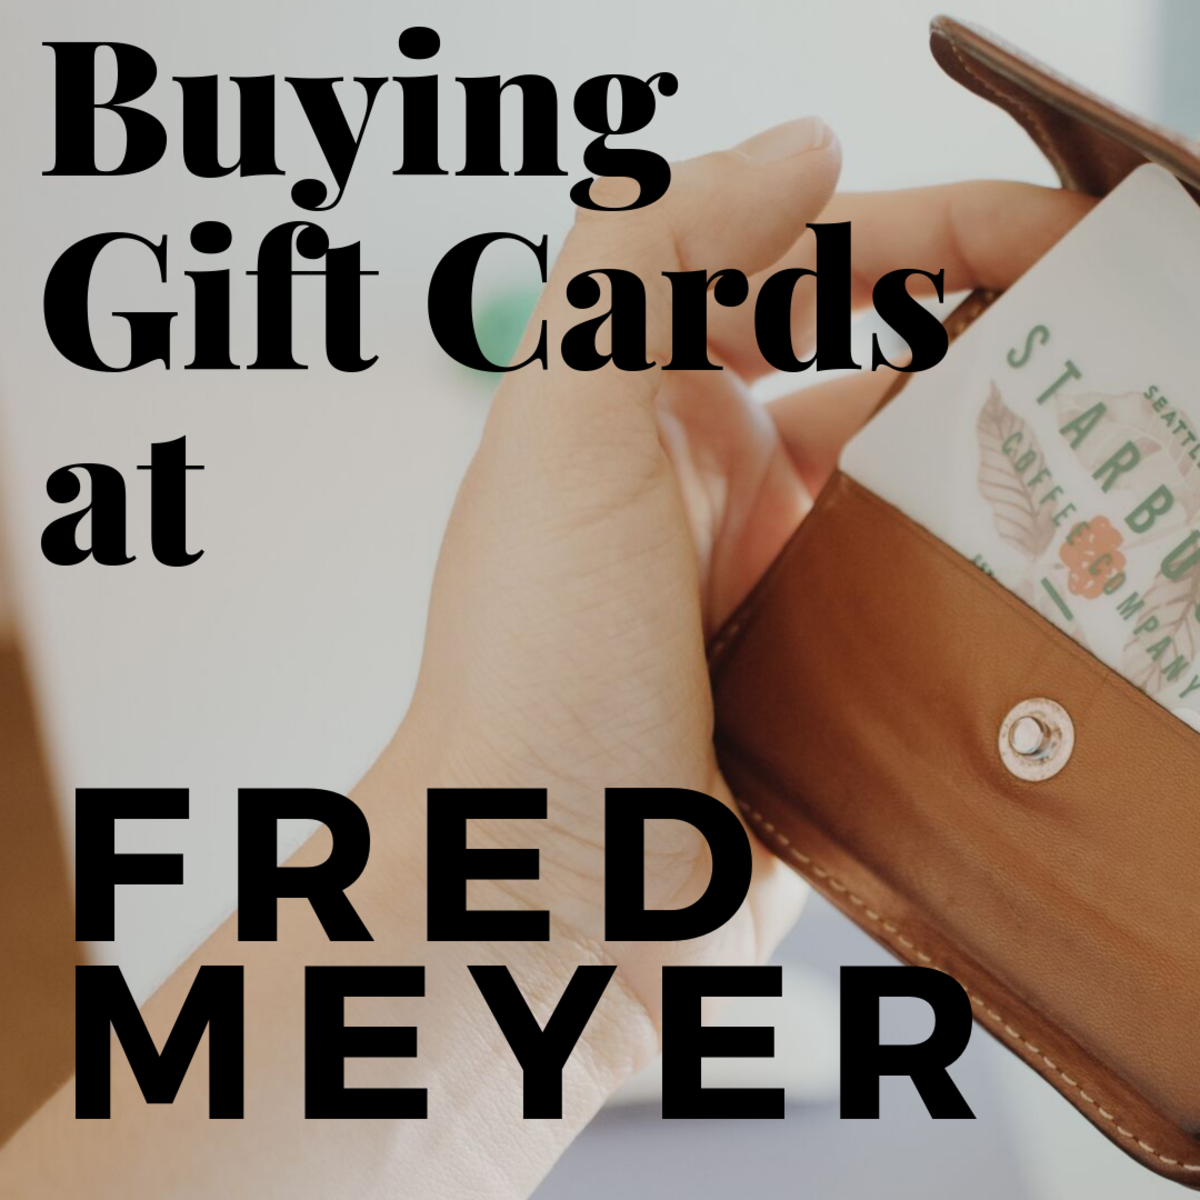 Fred Meyer Gift Card Buying Tips